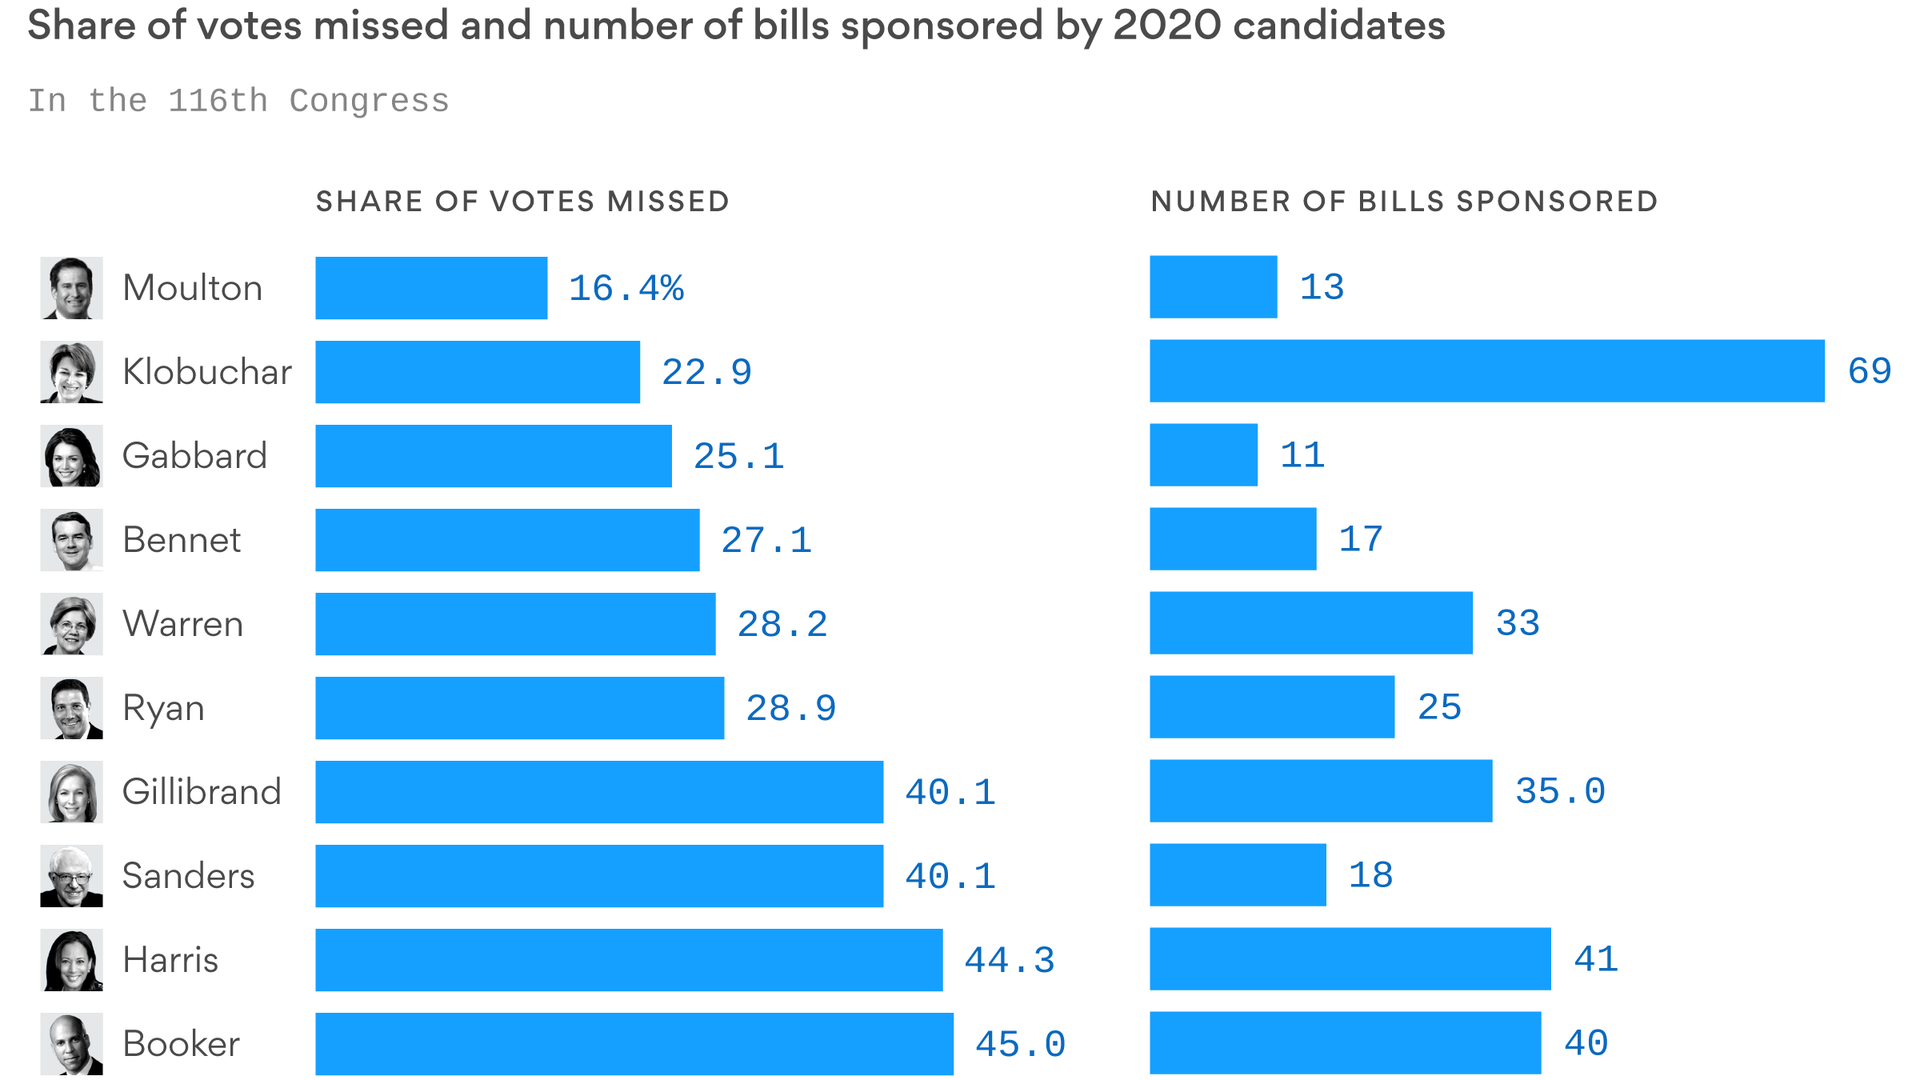 Amy Klobuchar has been the most productive 2020 candidate in Congress